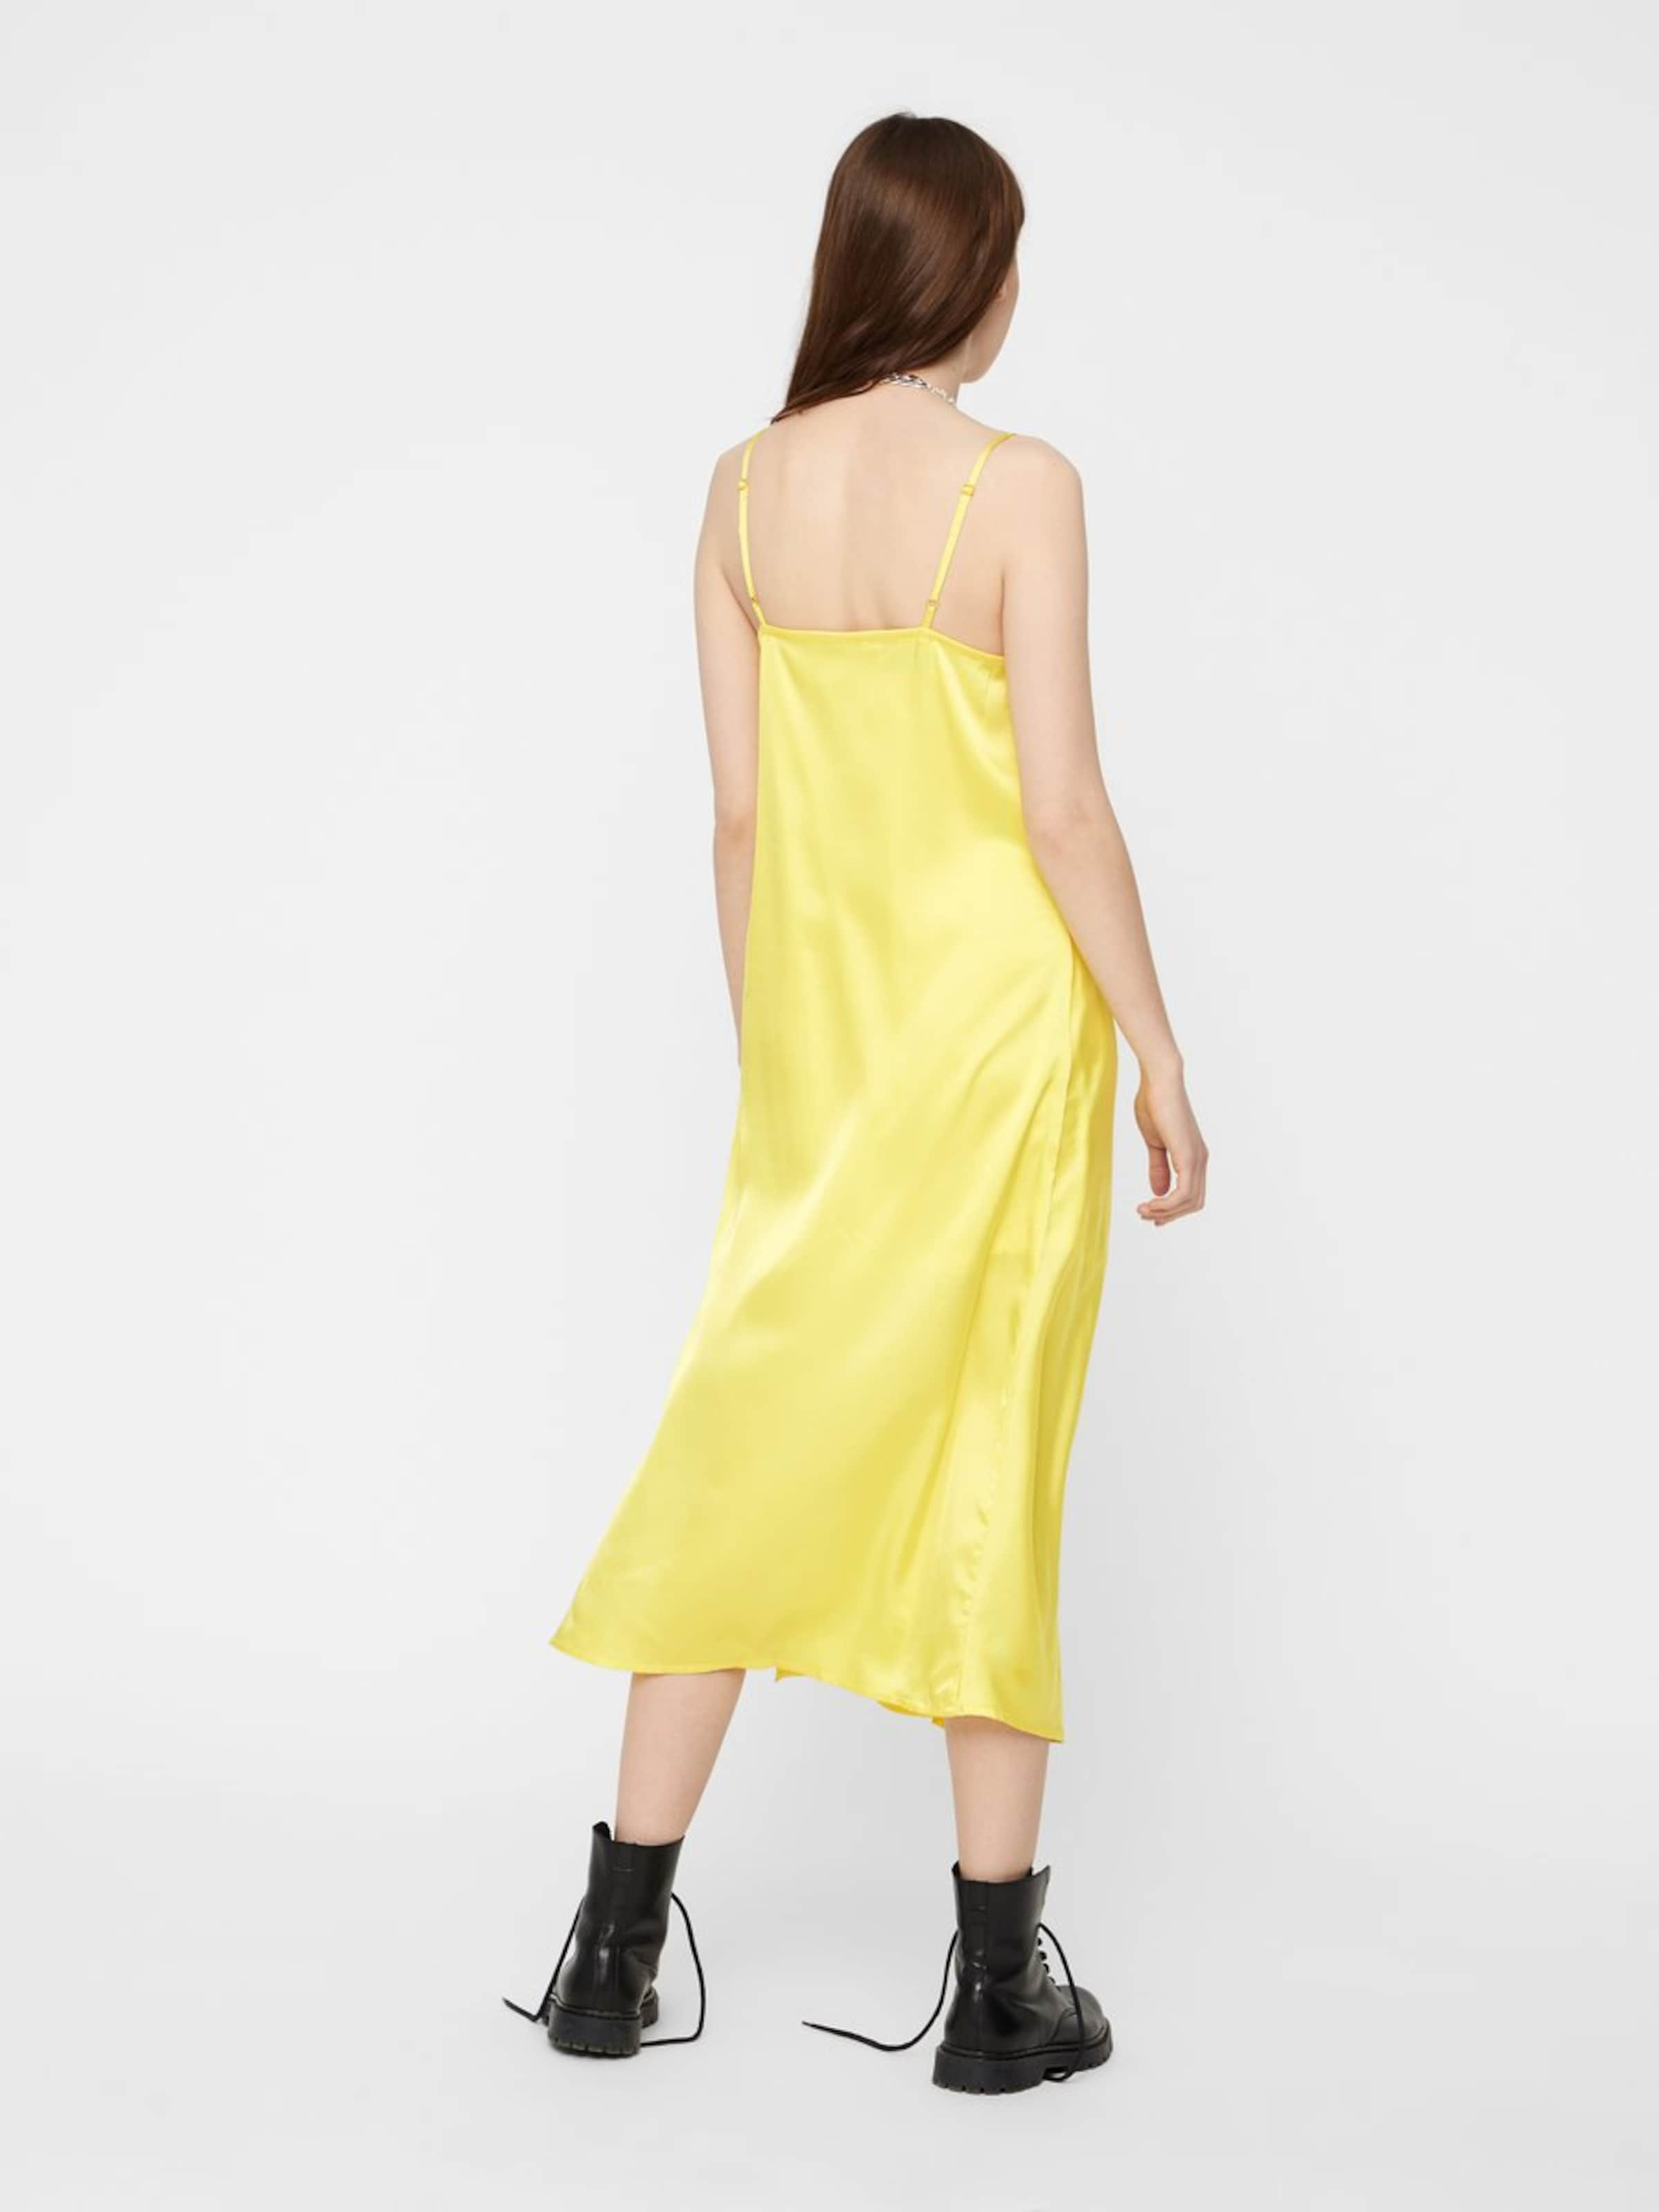 Pieces Jaune Jaune En Robe Pieces Robe En En Robe Pieces Jaune Pieces WH9D2IEY